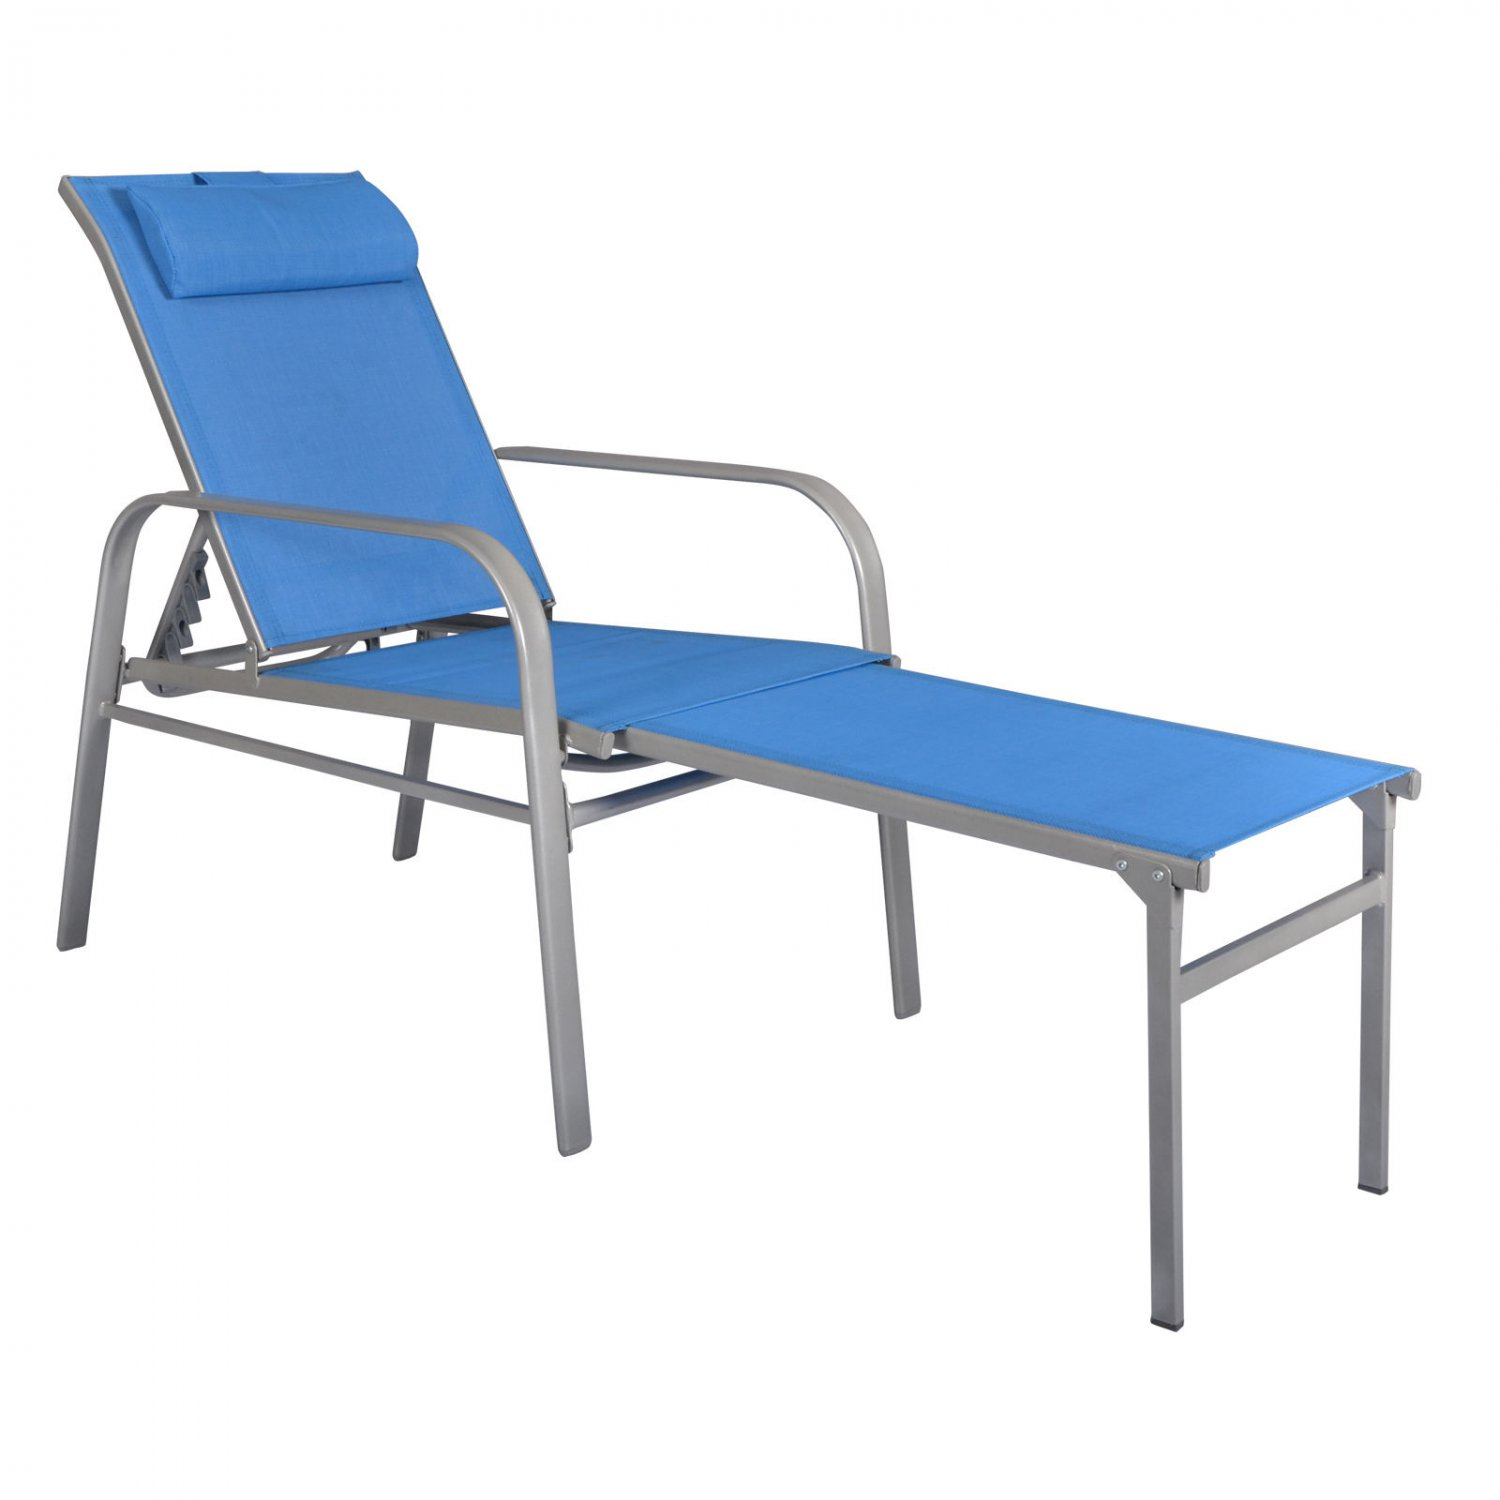 Adjustable pool chaise lounge chair recliner outdoor patio for Patio furniture chaise lounge